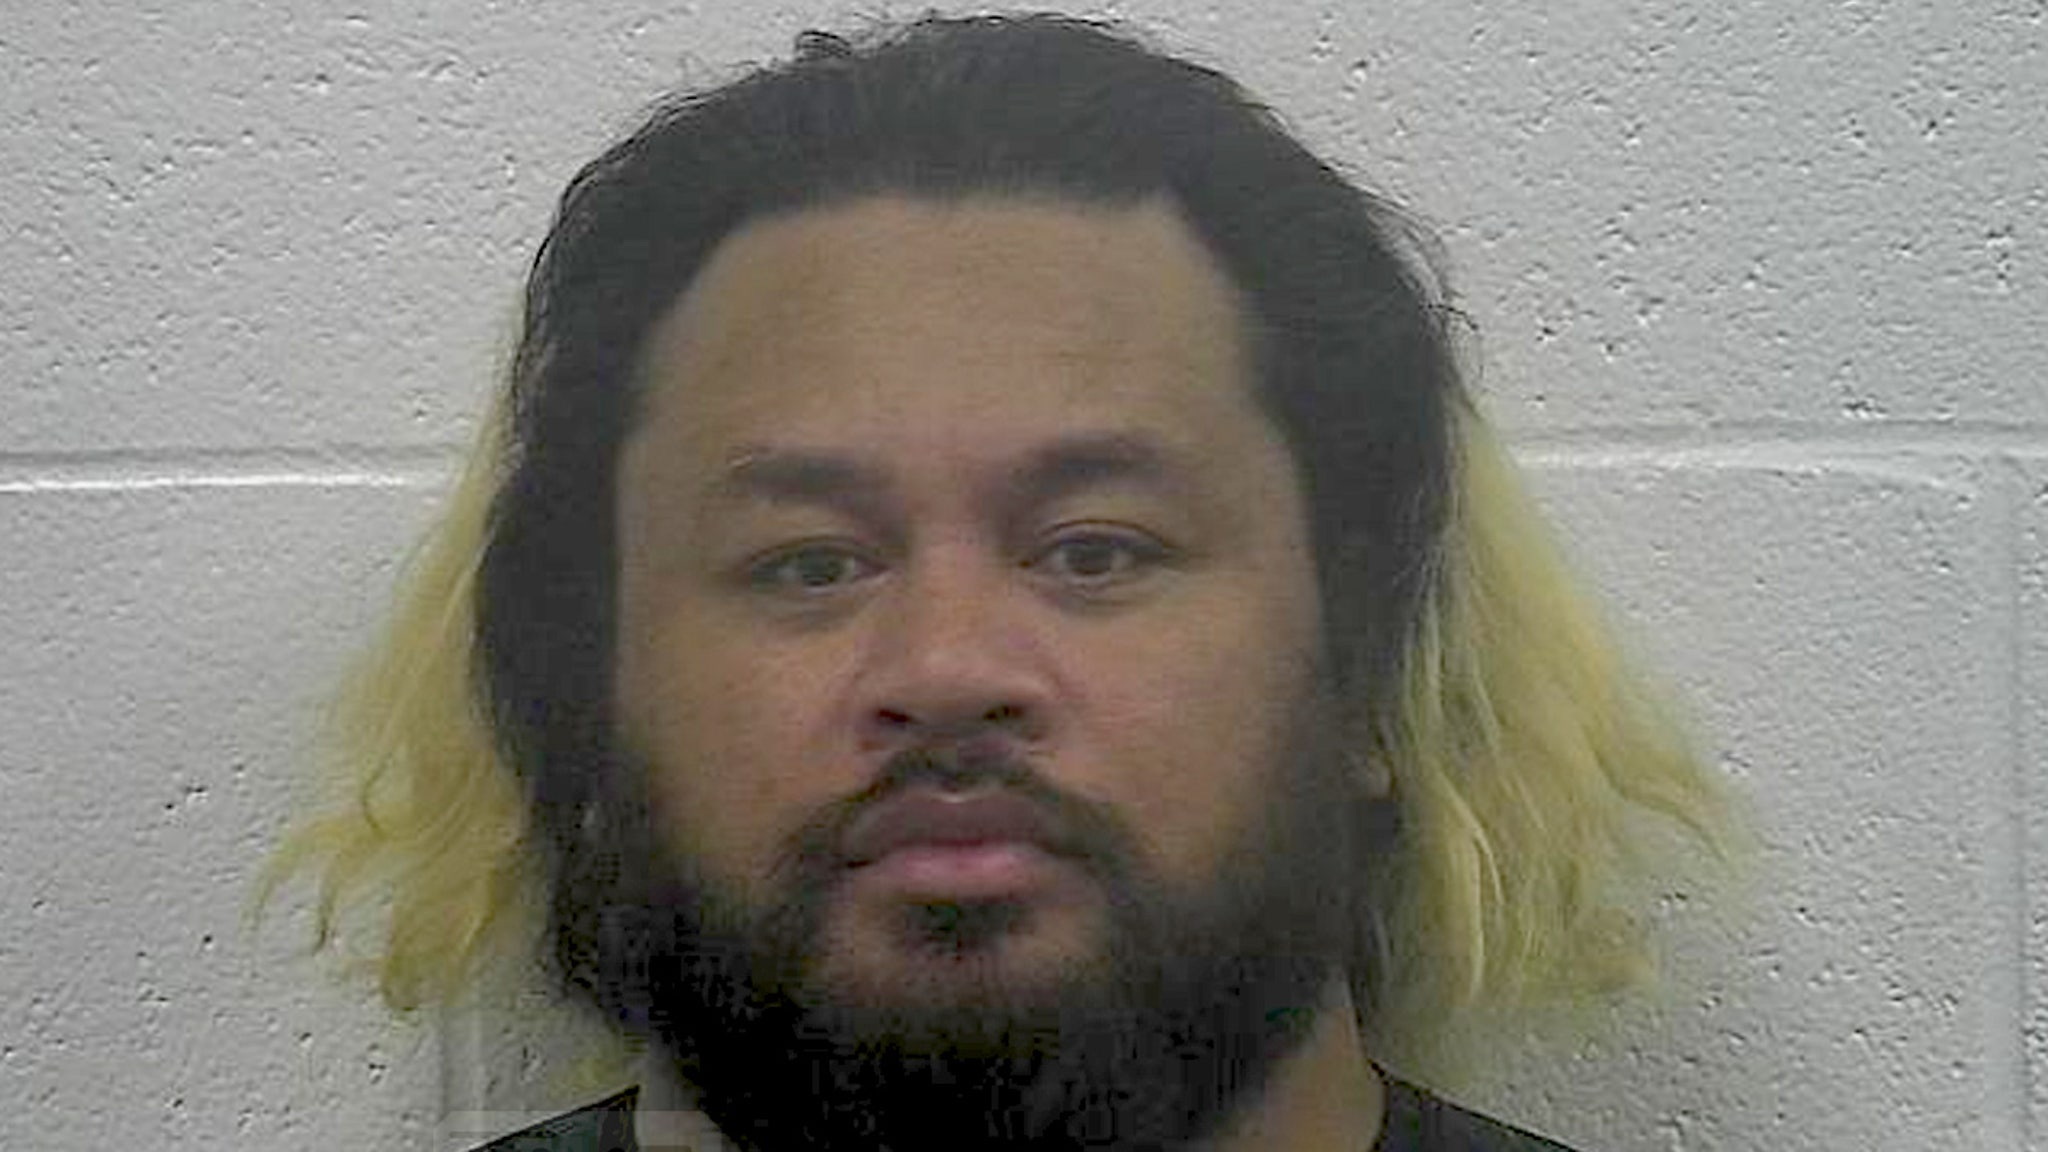 NFL's Rey Maualuga Plowed Through Mailboxes & Hit Parked Car Before Arrest, Cops Say thumbnail